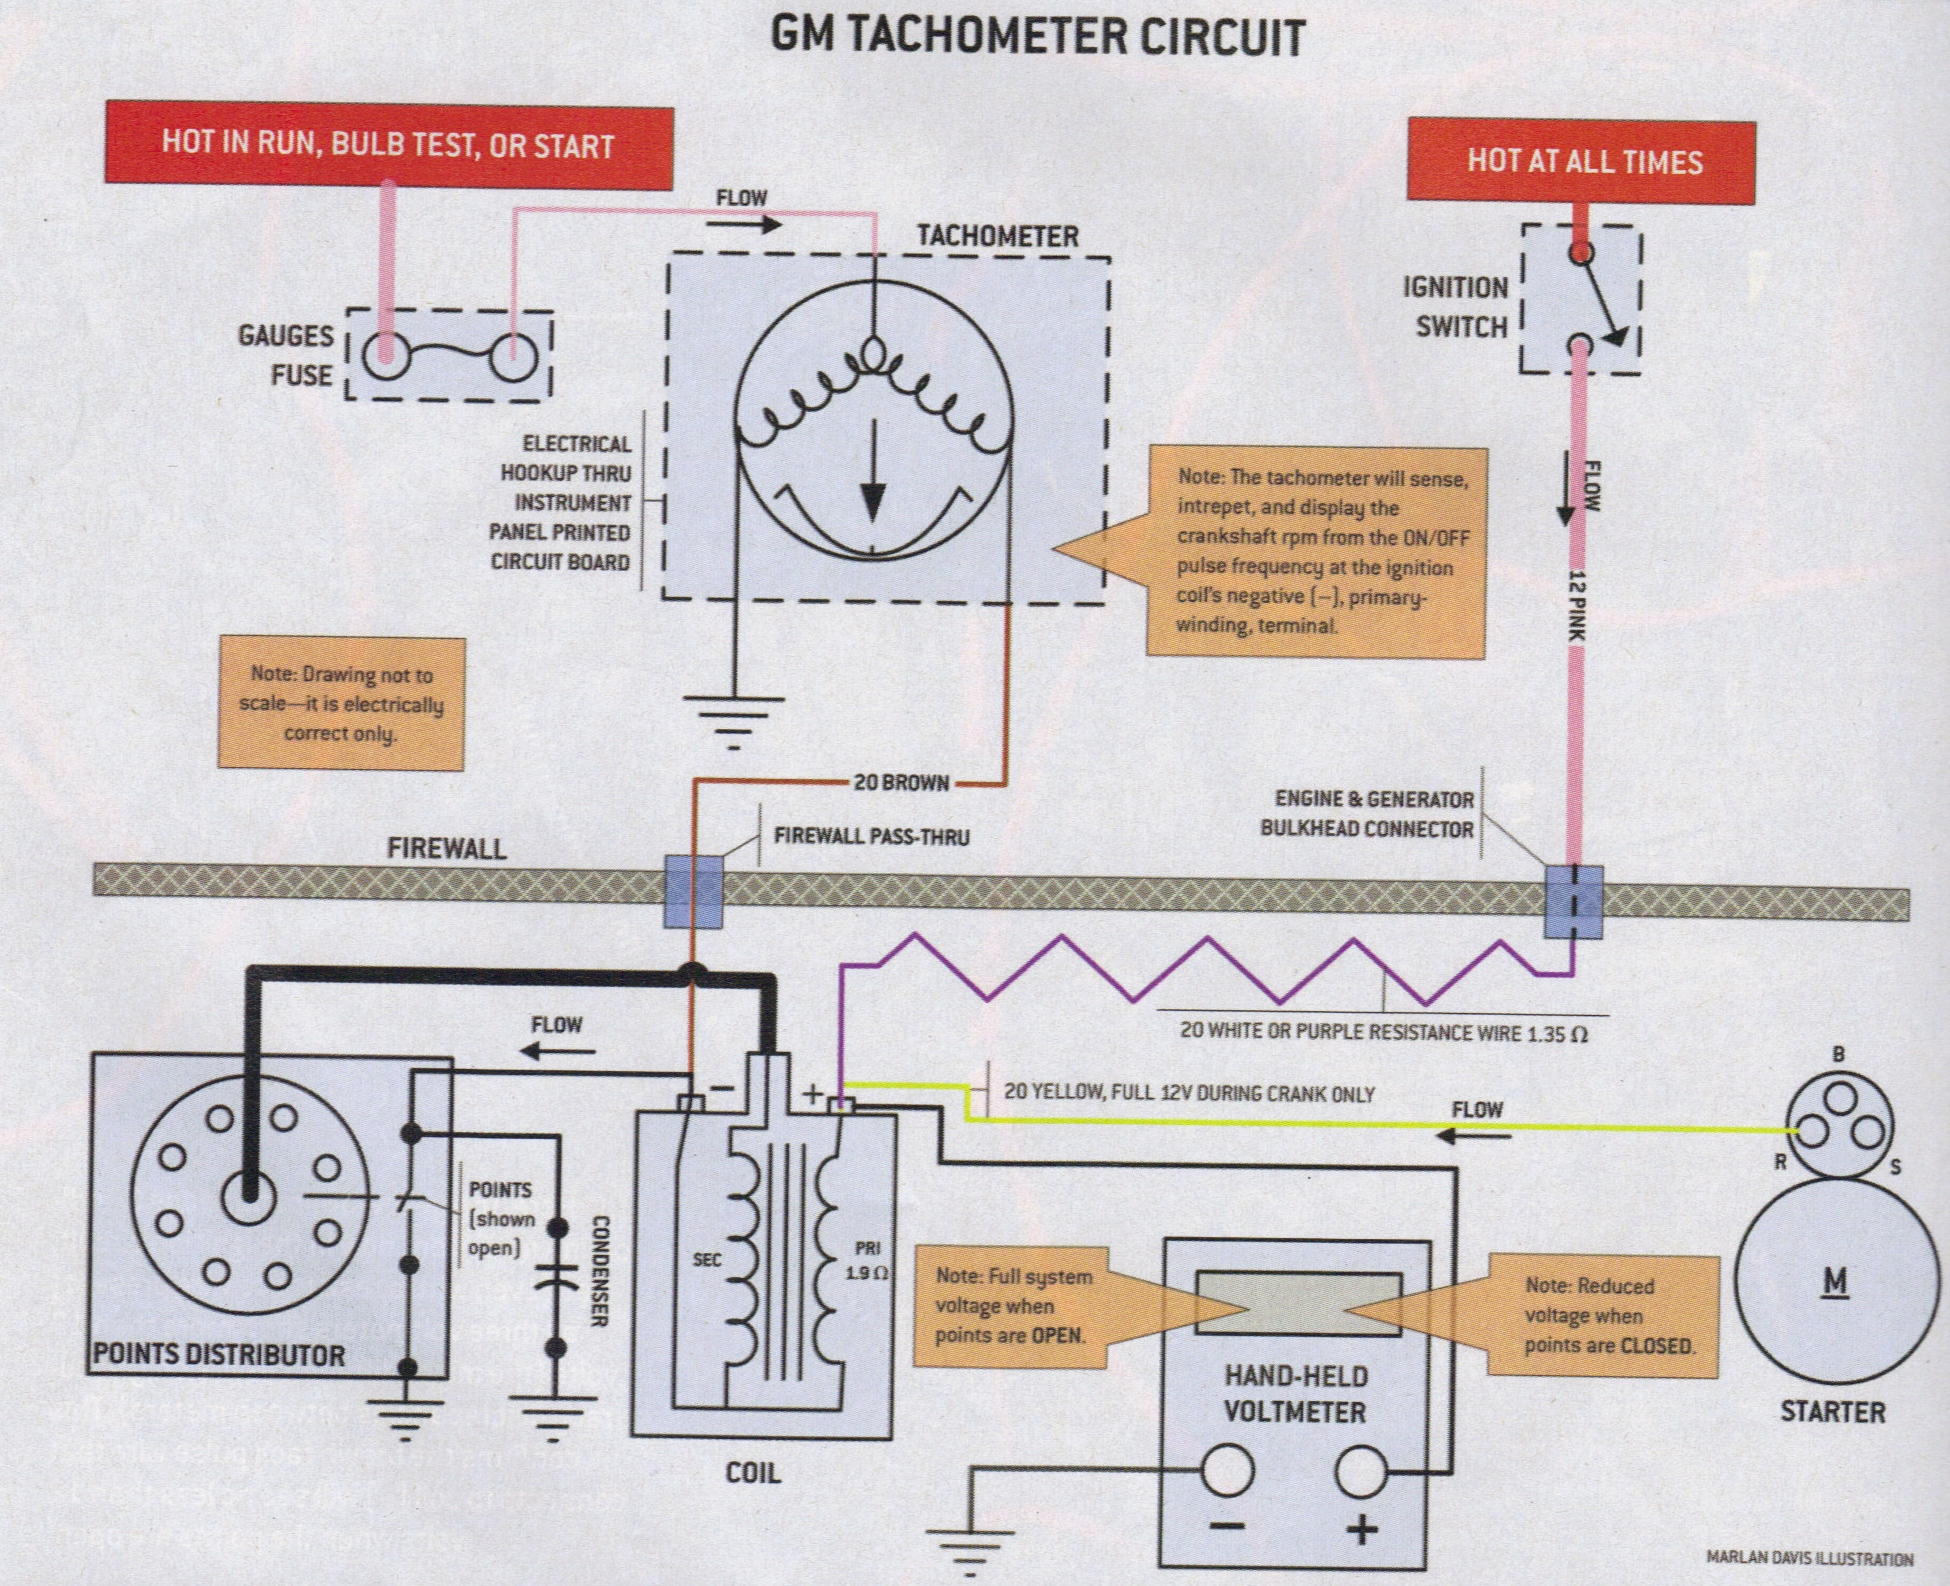 Chrysler Wiring Diagram on chrysler electrical schematic, chrysler crossfire exhaust diagrams, dodge truck electrical diagrams, chrysler fuel diagrams, chrysler speaker wire diagrams, chrysler cooling system diagram, chrysler engine diagrams, chrysler heater core replacement, chrysler parts diagrams, chrysler repair diagrams, chrysler auto repair manual, chrysler battery,